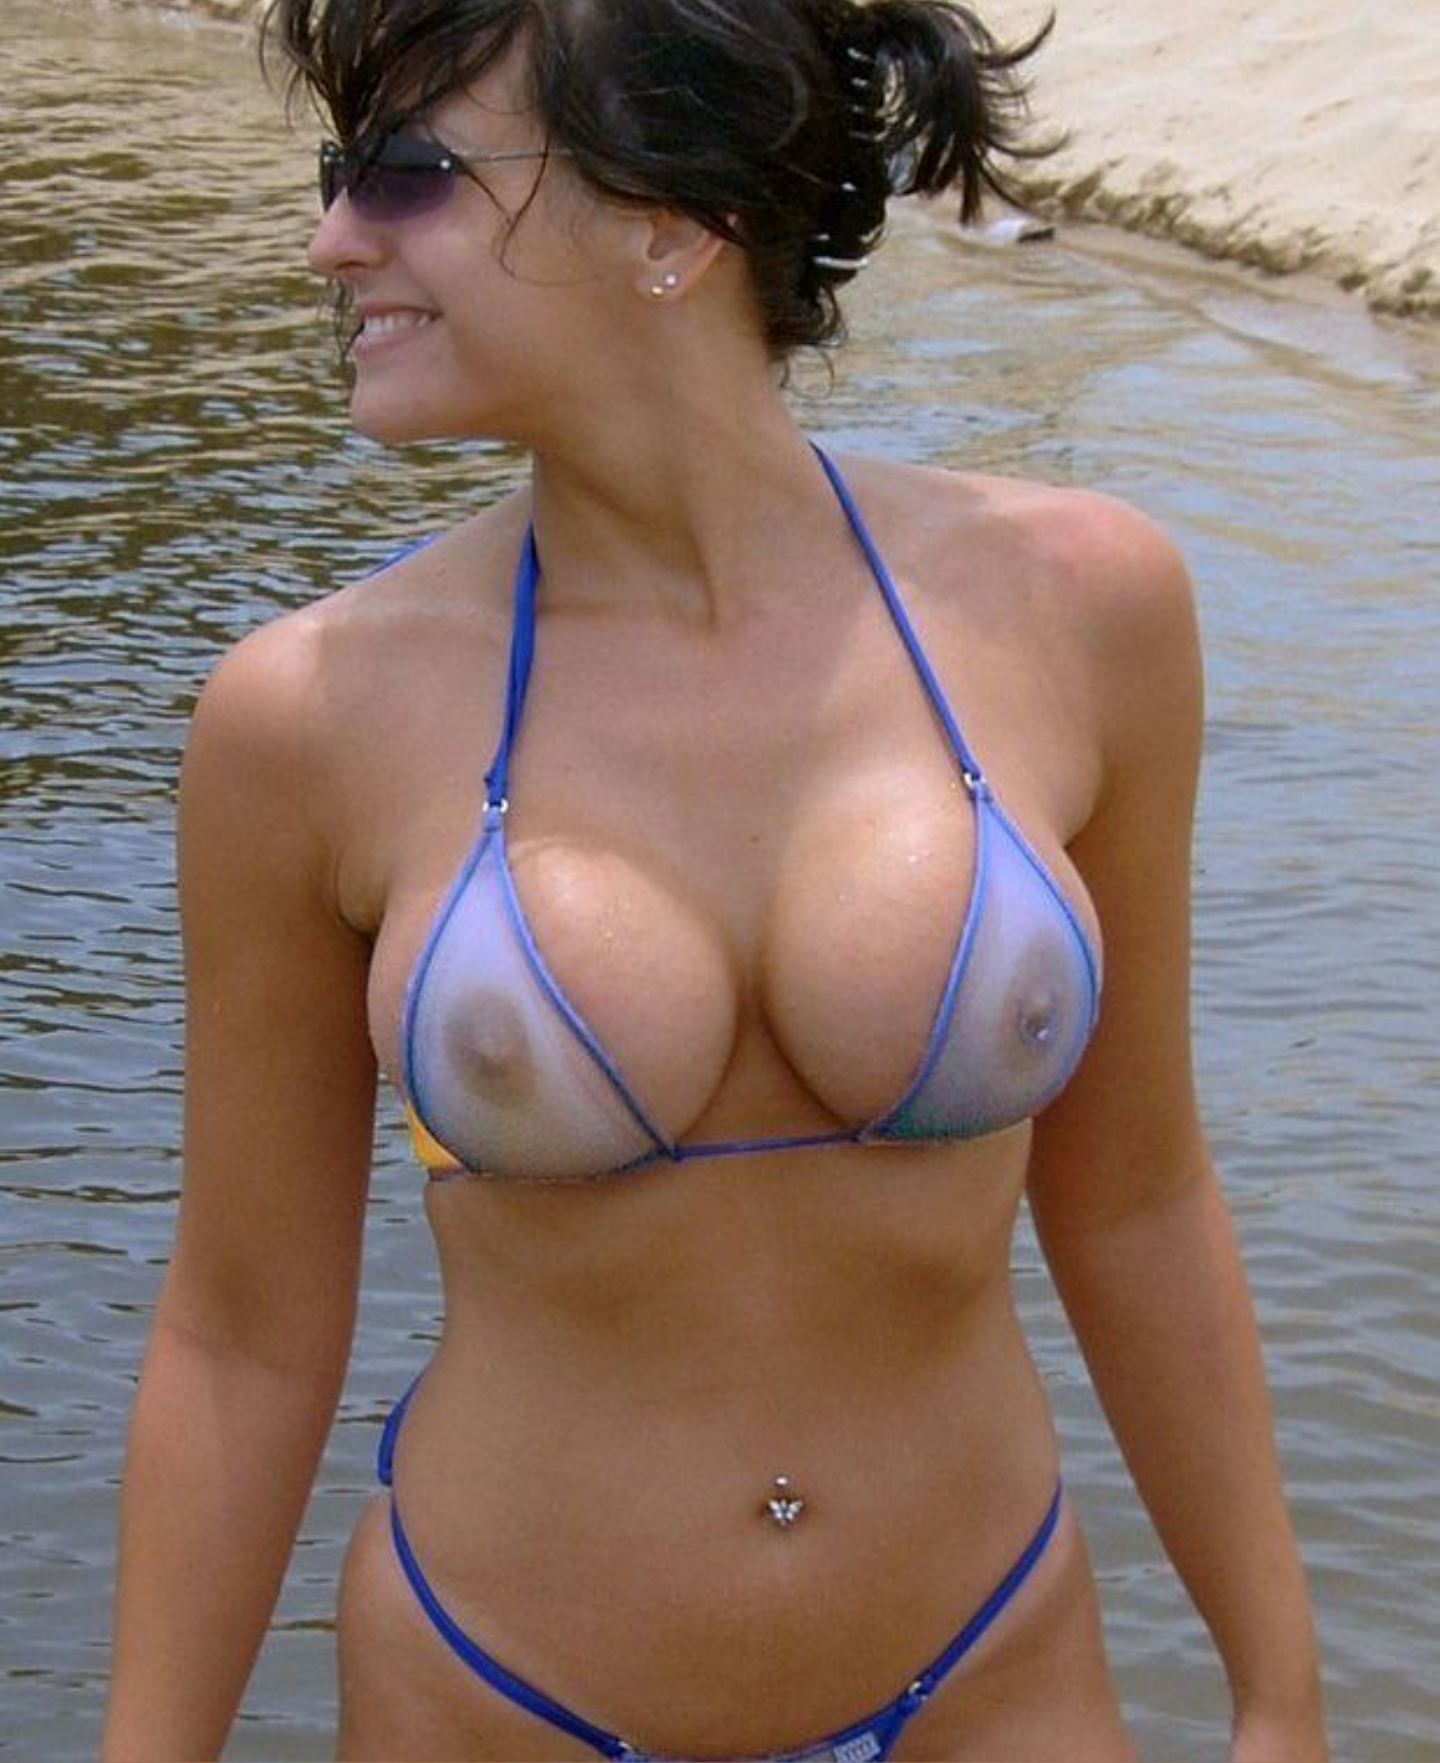 through Mature micro bikinis see